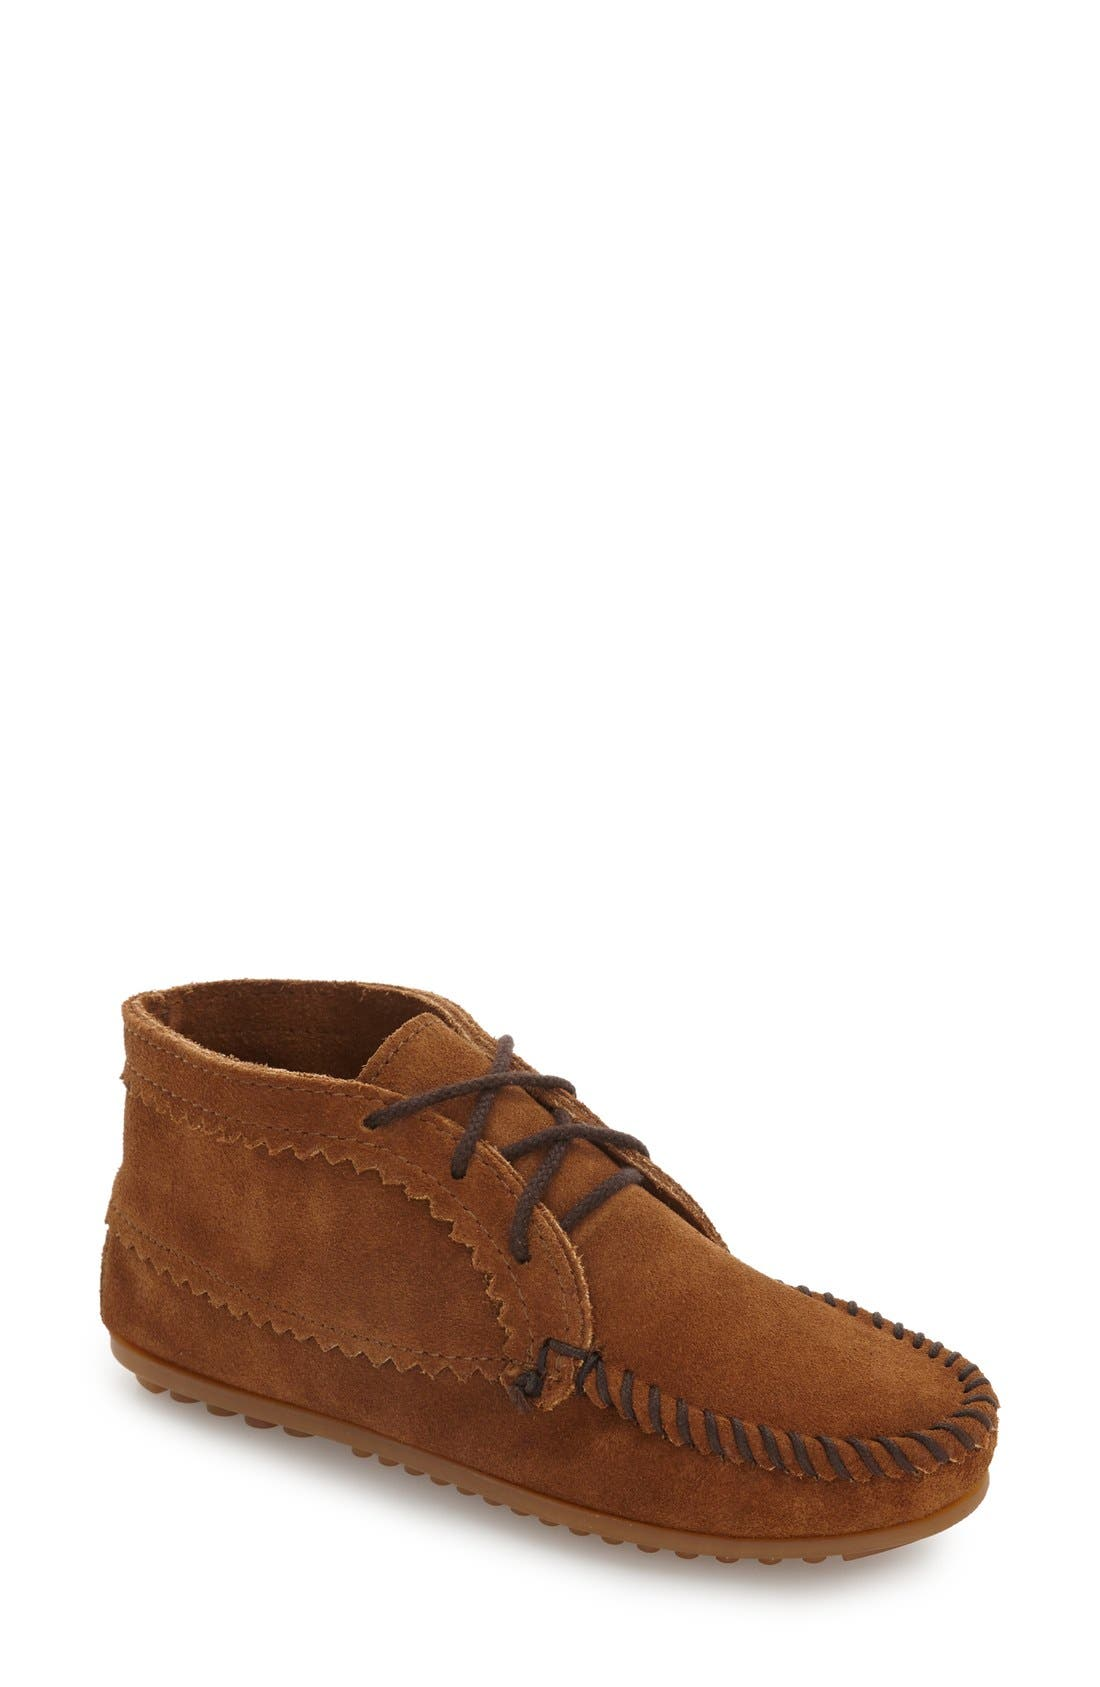 Minnetonka Chukka Moccasin Boot (Women)